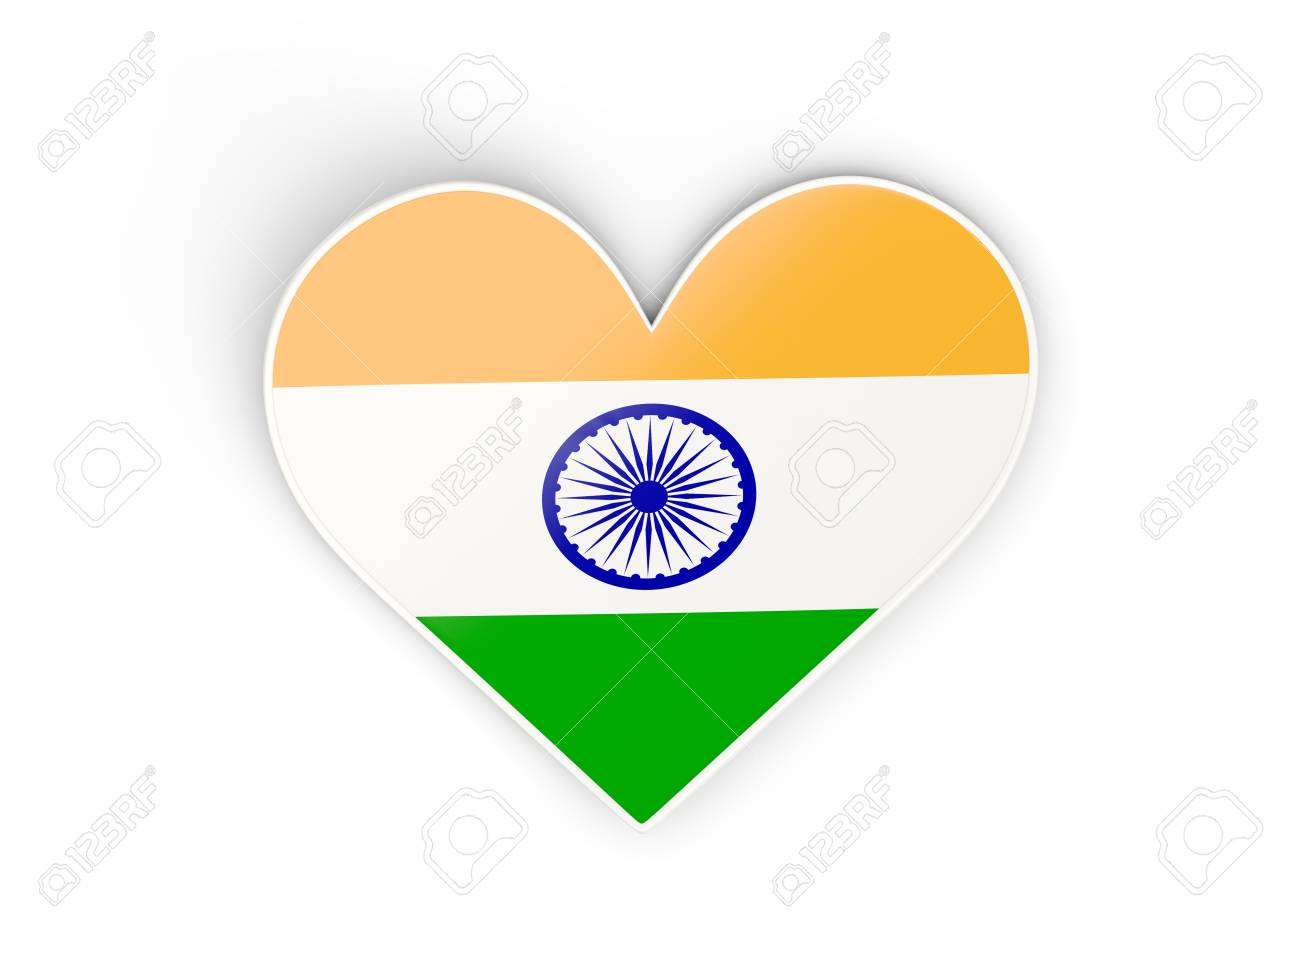 Flag of india heart shaped sticker isolated on white 3d illustration stock illustration